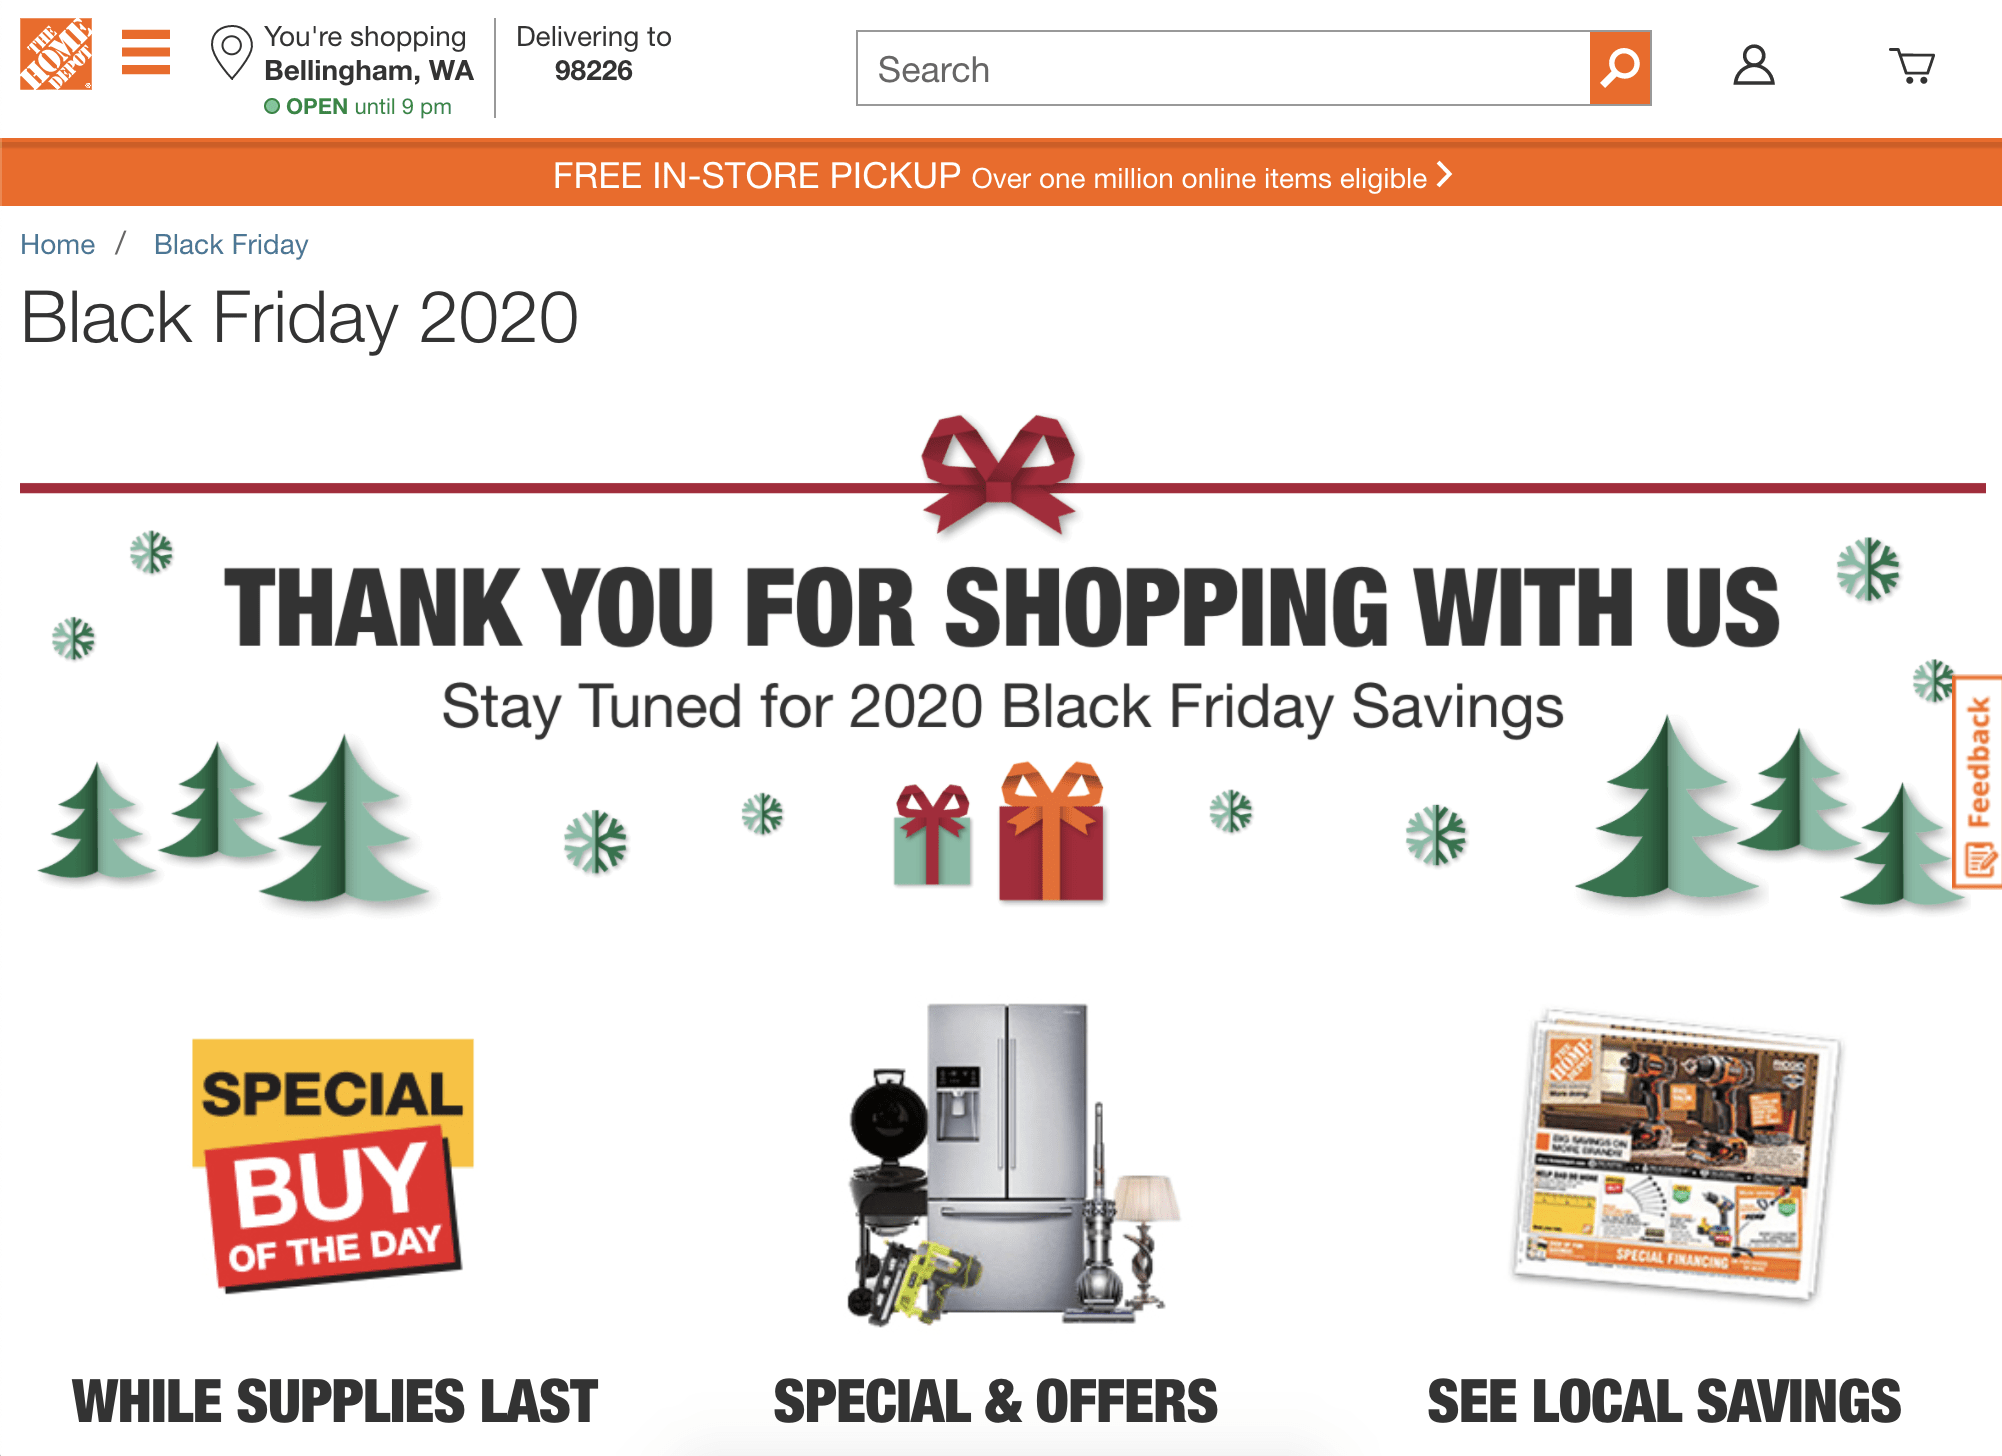 Home Depot is already starting to tease their Black Friday sales